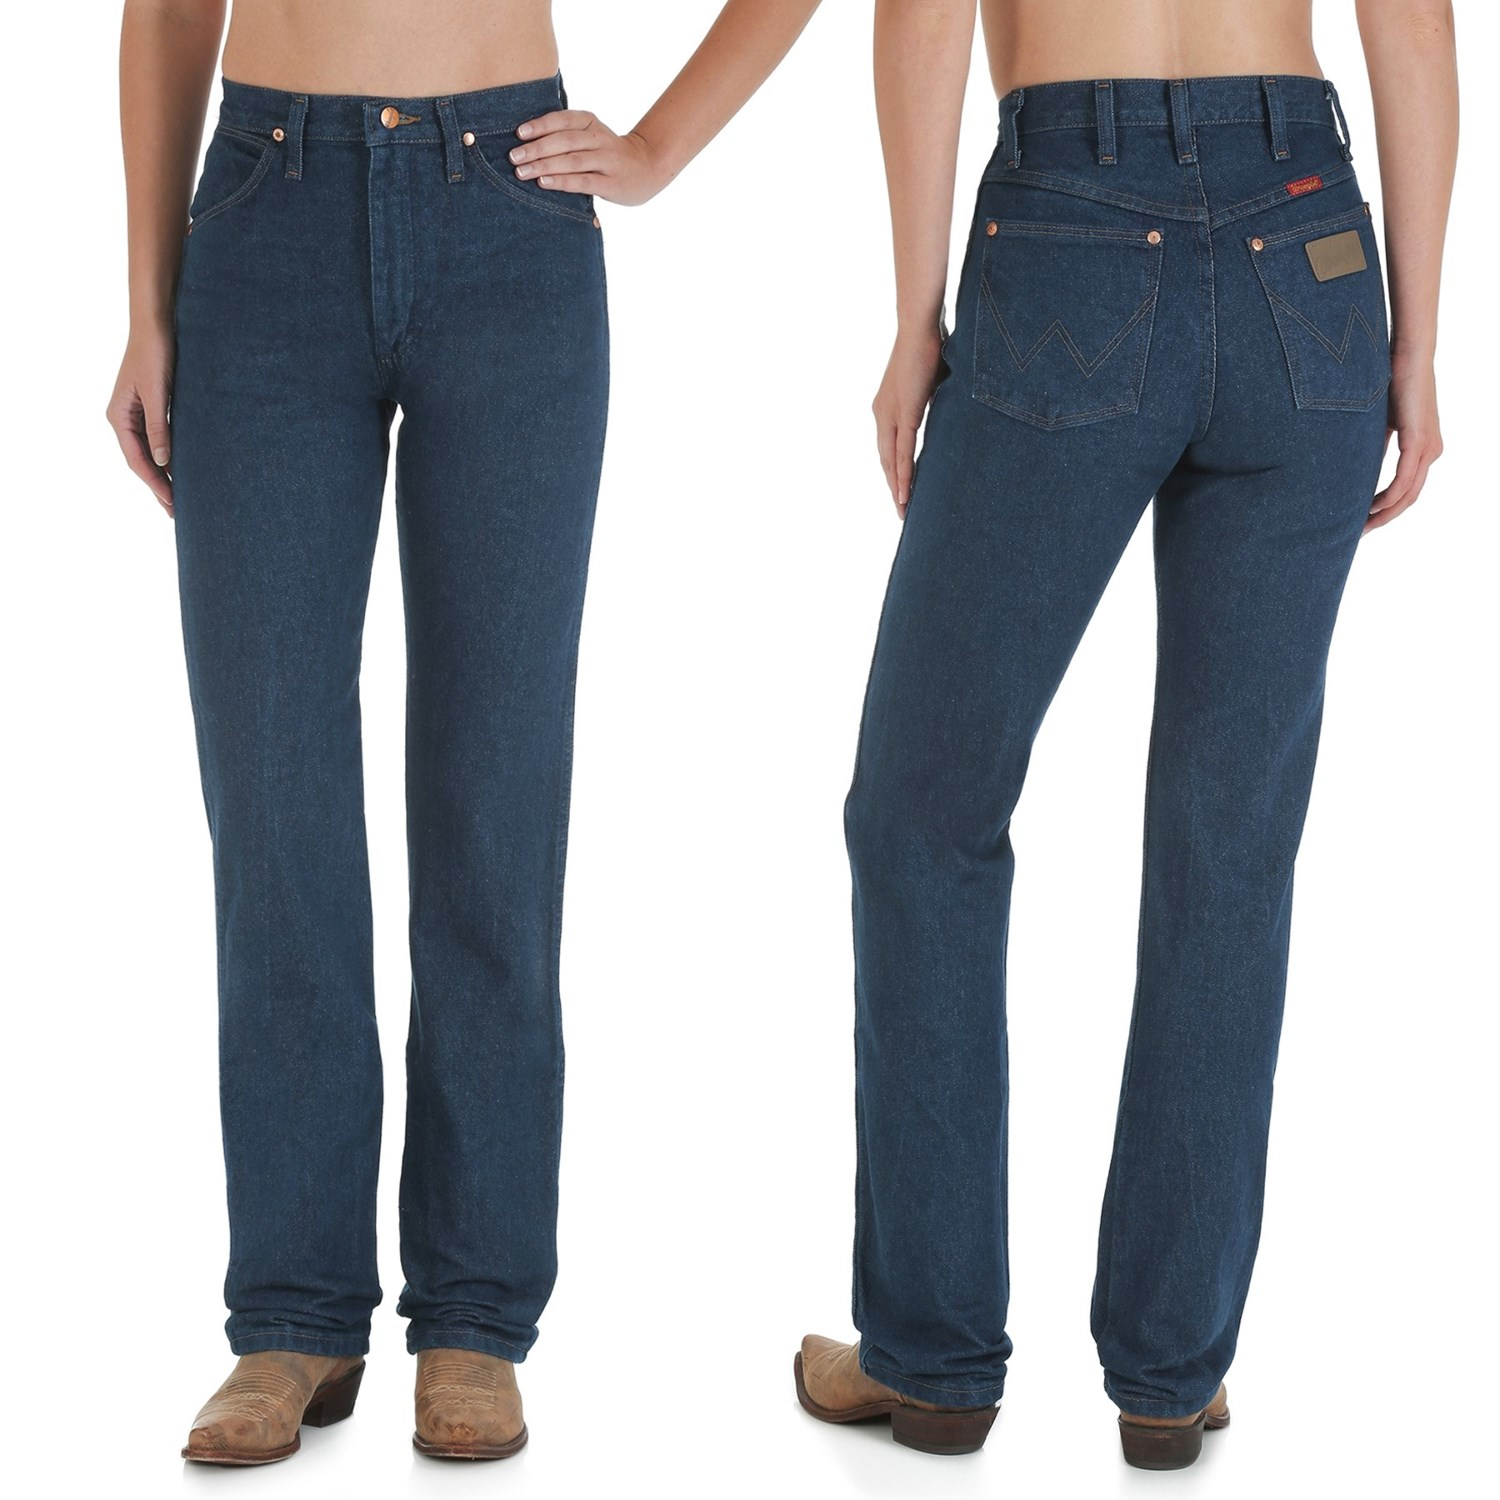 Wranglers Womens Jeans